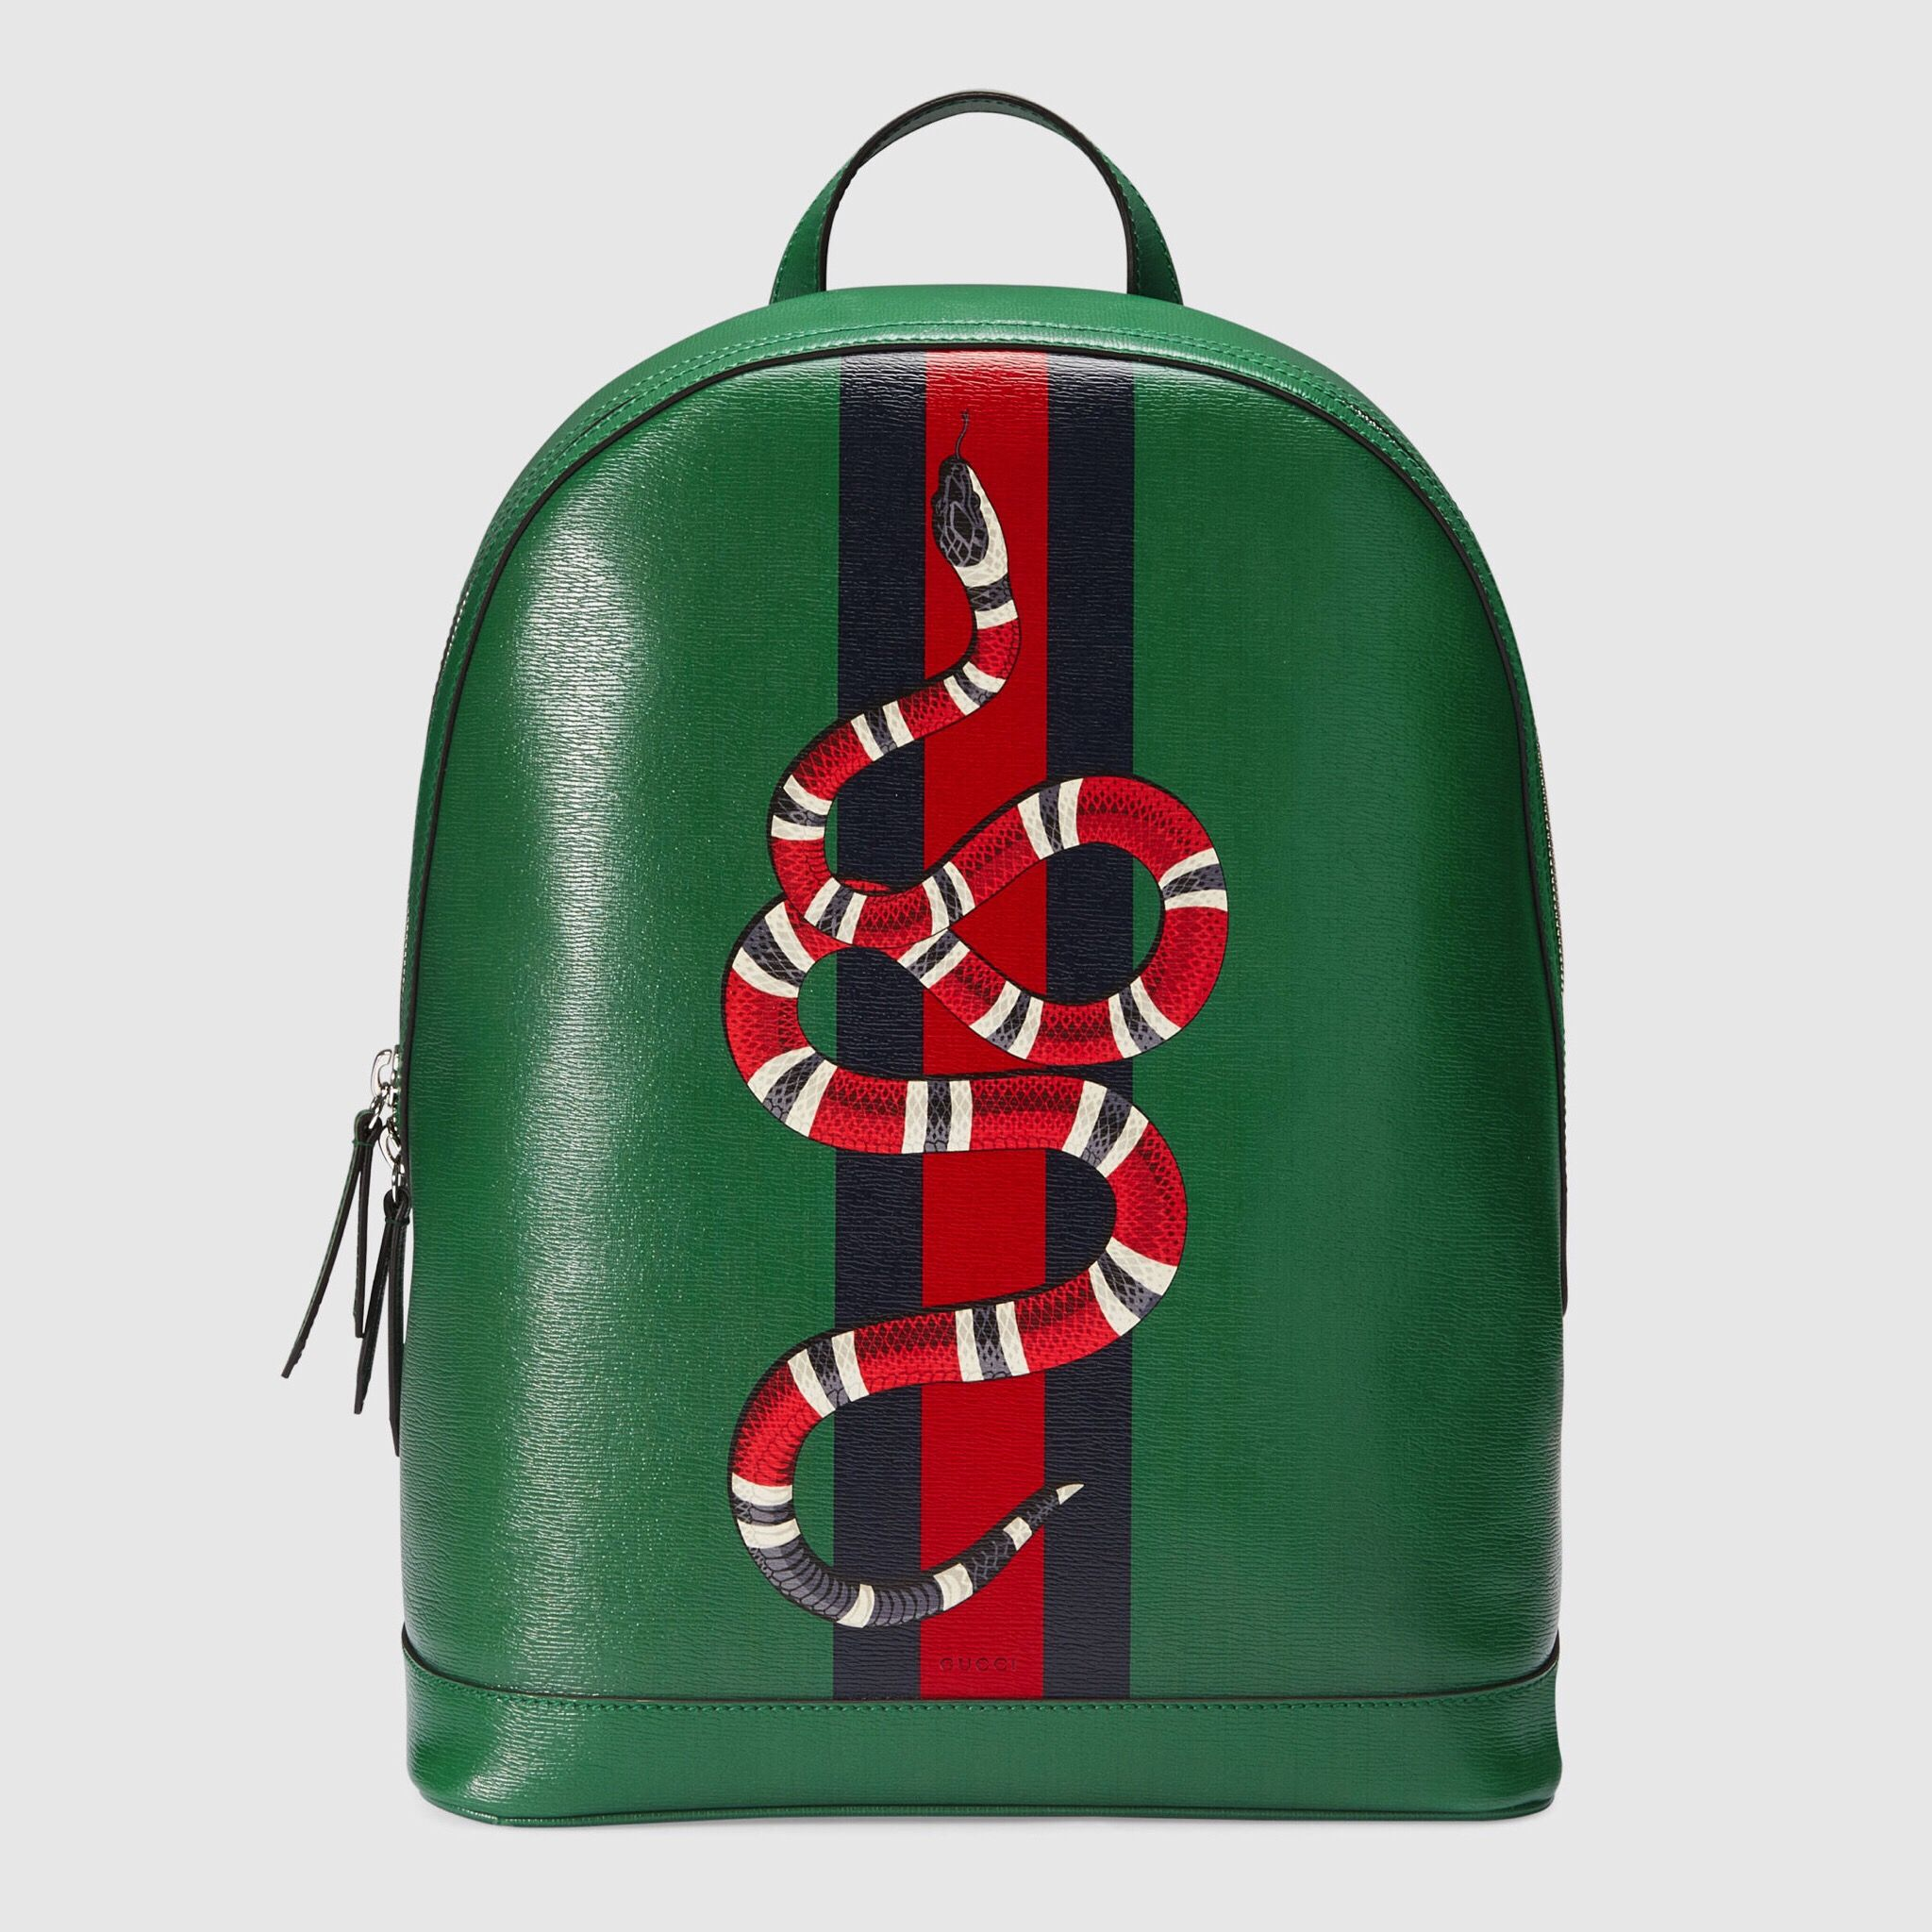 fe111907f2ab Gucci Snake Backpack | My Style in 2019 | Gucci handbags, Gucci ...